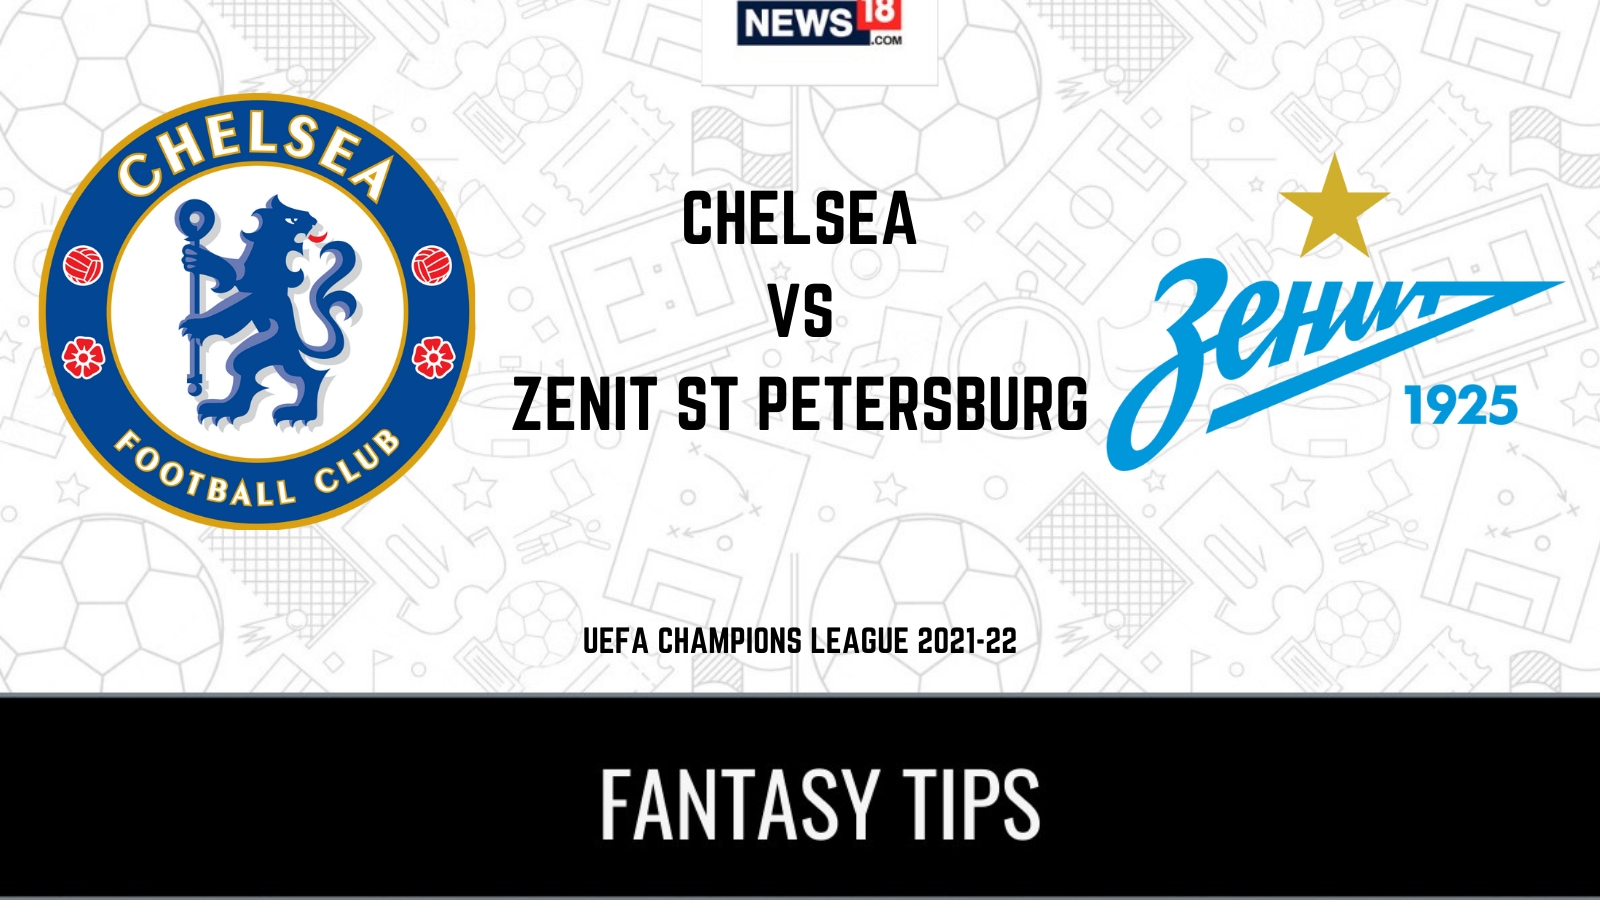 CHE vs ZEN Dream11 Team Prediction and Tips for today's UEFA Champions League match: Check Captain, Vice-Captain and probable playing XIs for today's UEFA Champions League match Chelsea vs Zenit Saint Petersburg September 15 00:15 AM IST